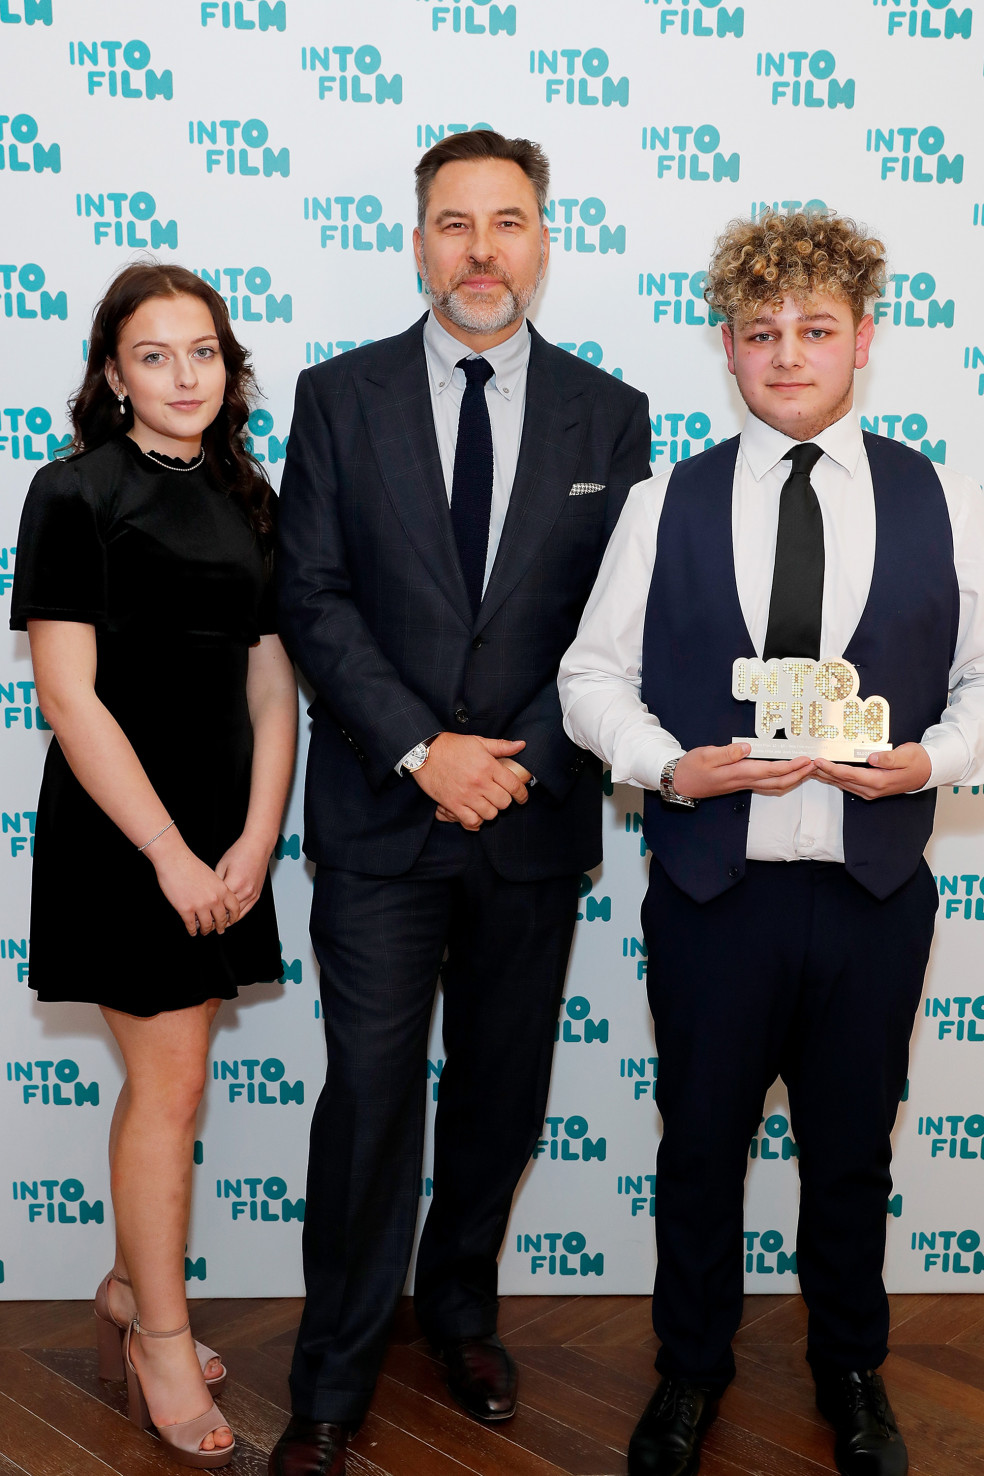 Best Film: 12-15 winners with David Walliams